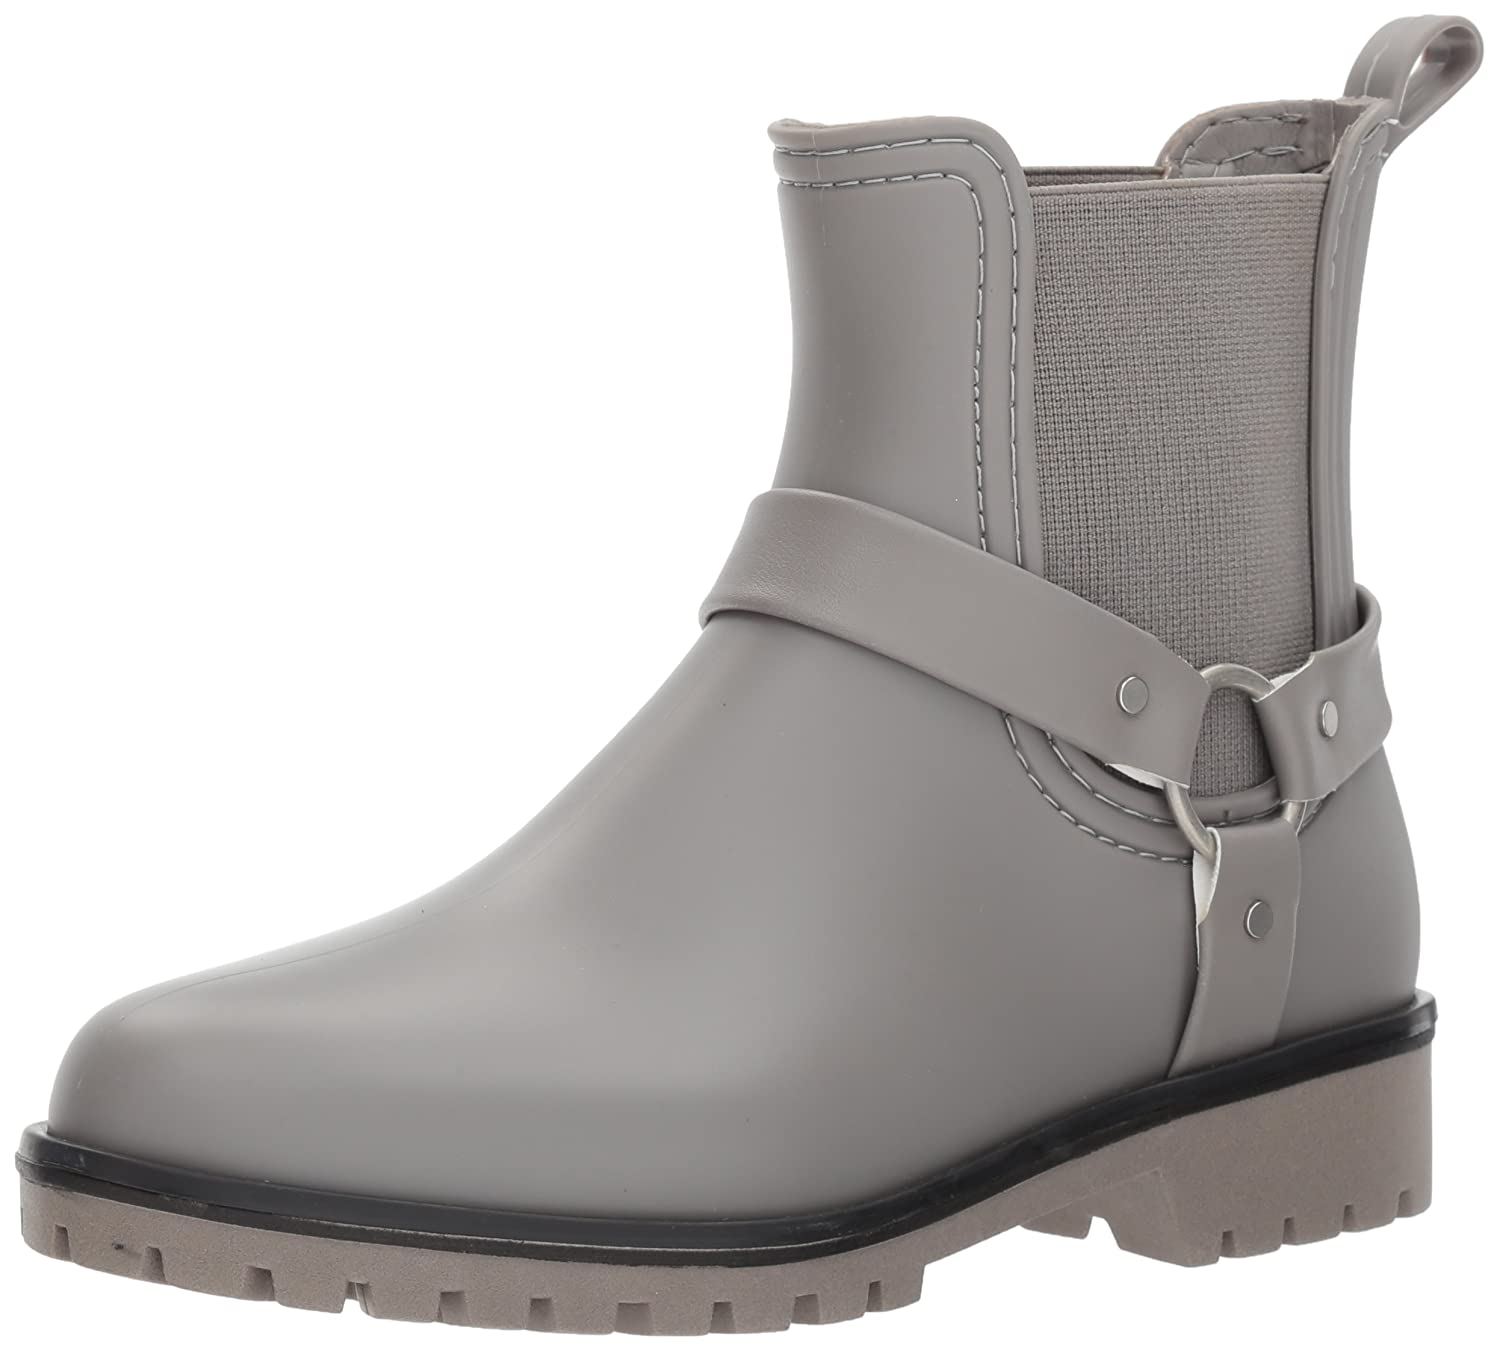 Bernardo Women's Zoe Rain Boot B06XYLYVSQ 8 B(M) US|Grey Rubber